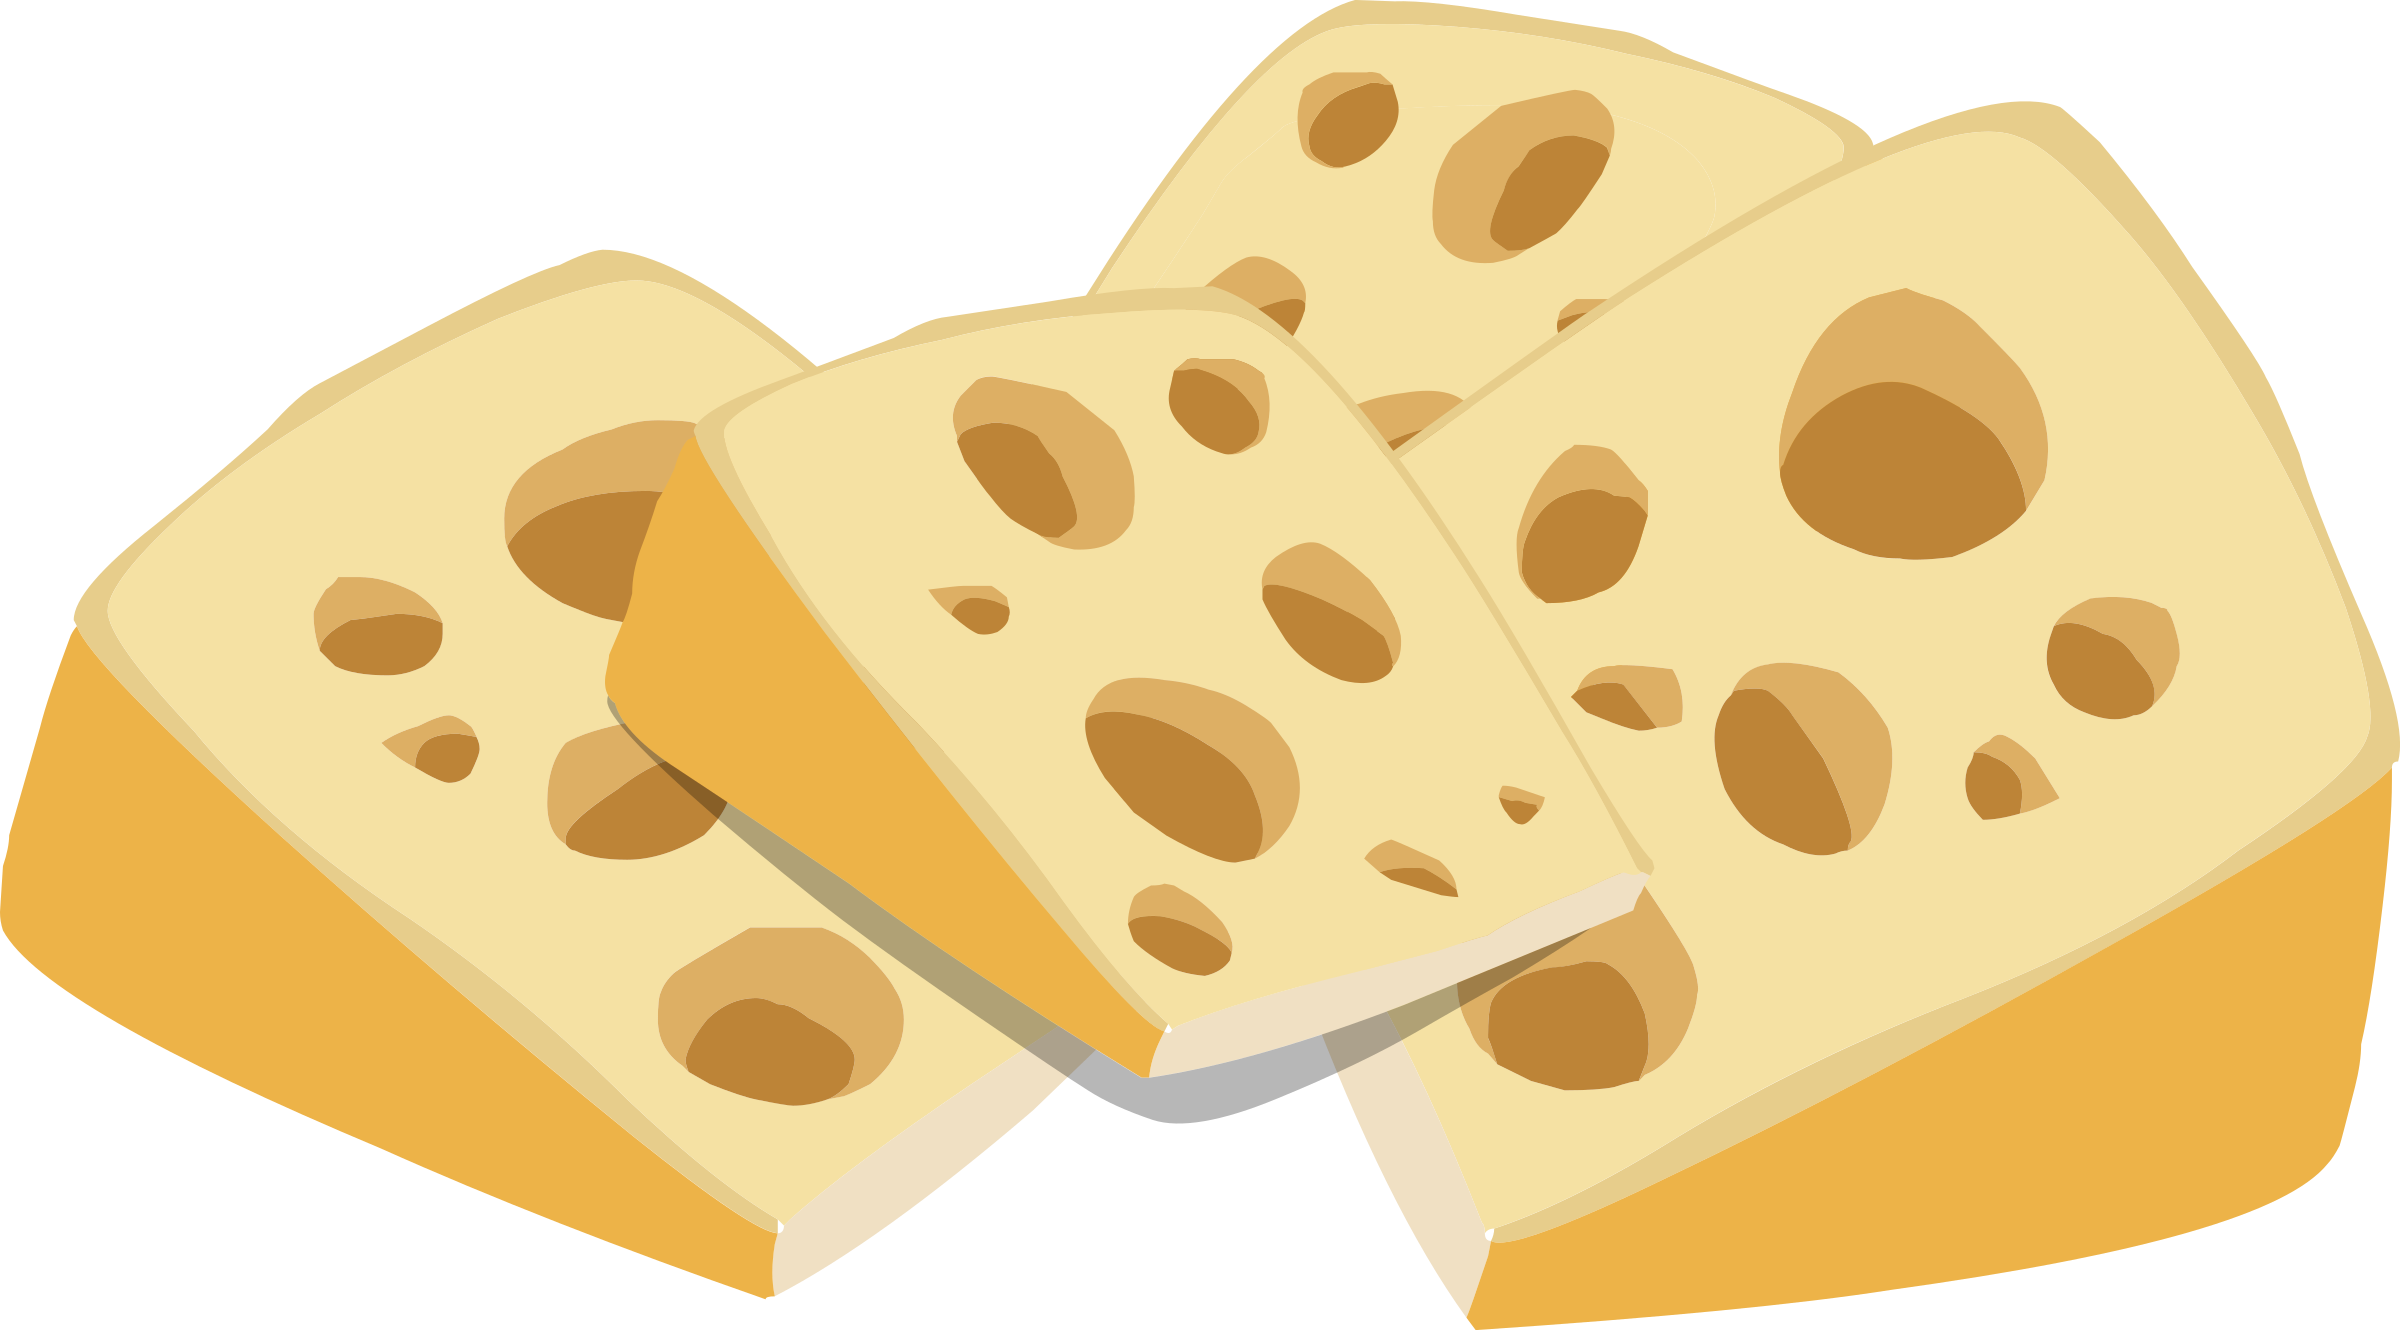 Cheese clipart transparent background. Food icons png free